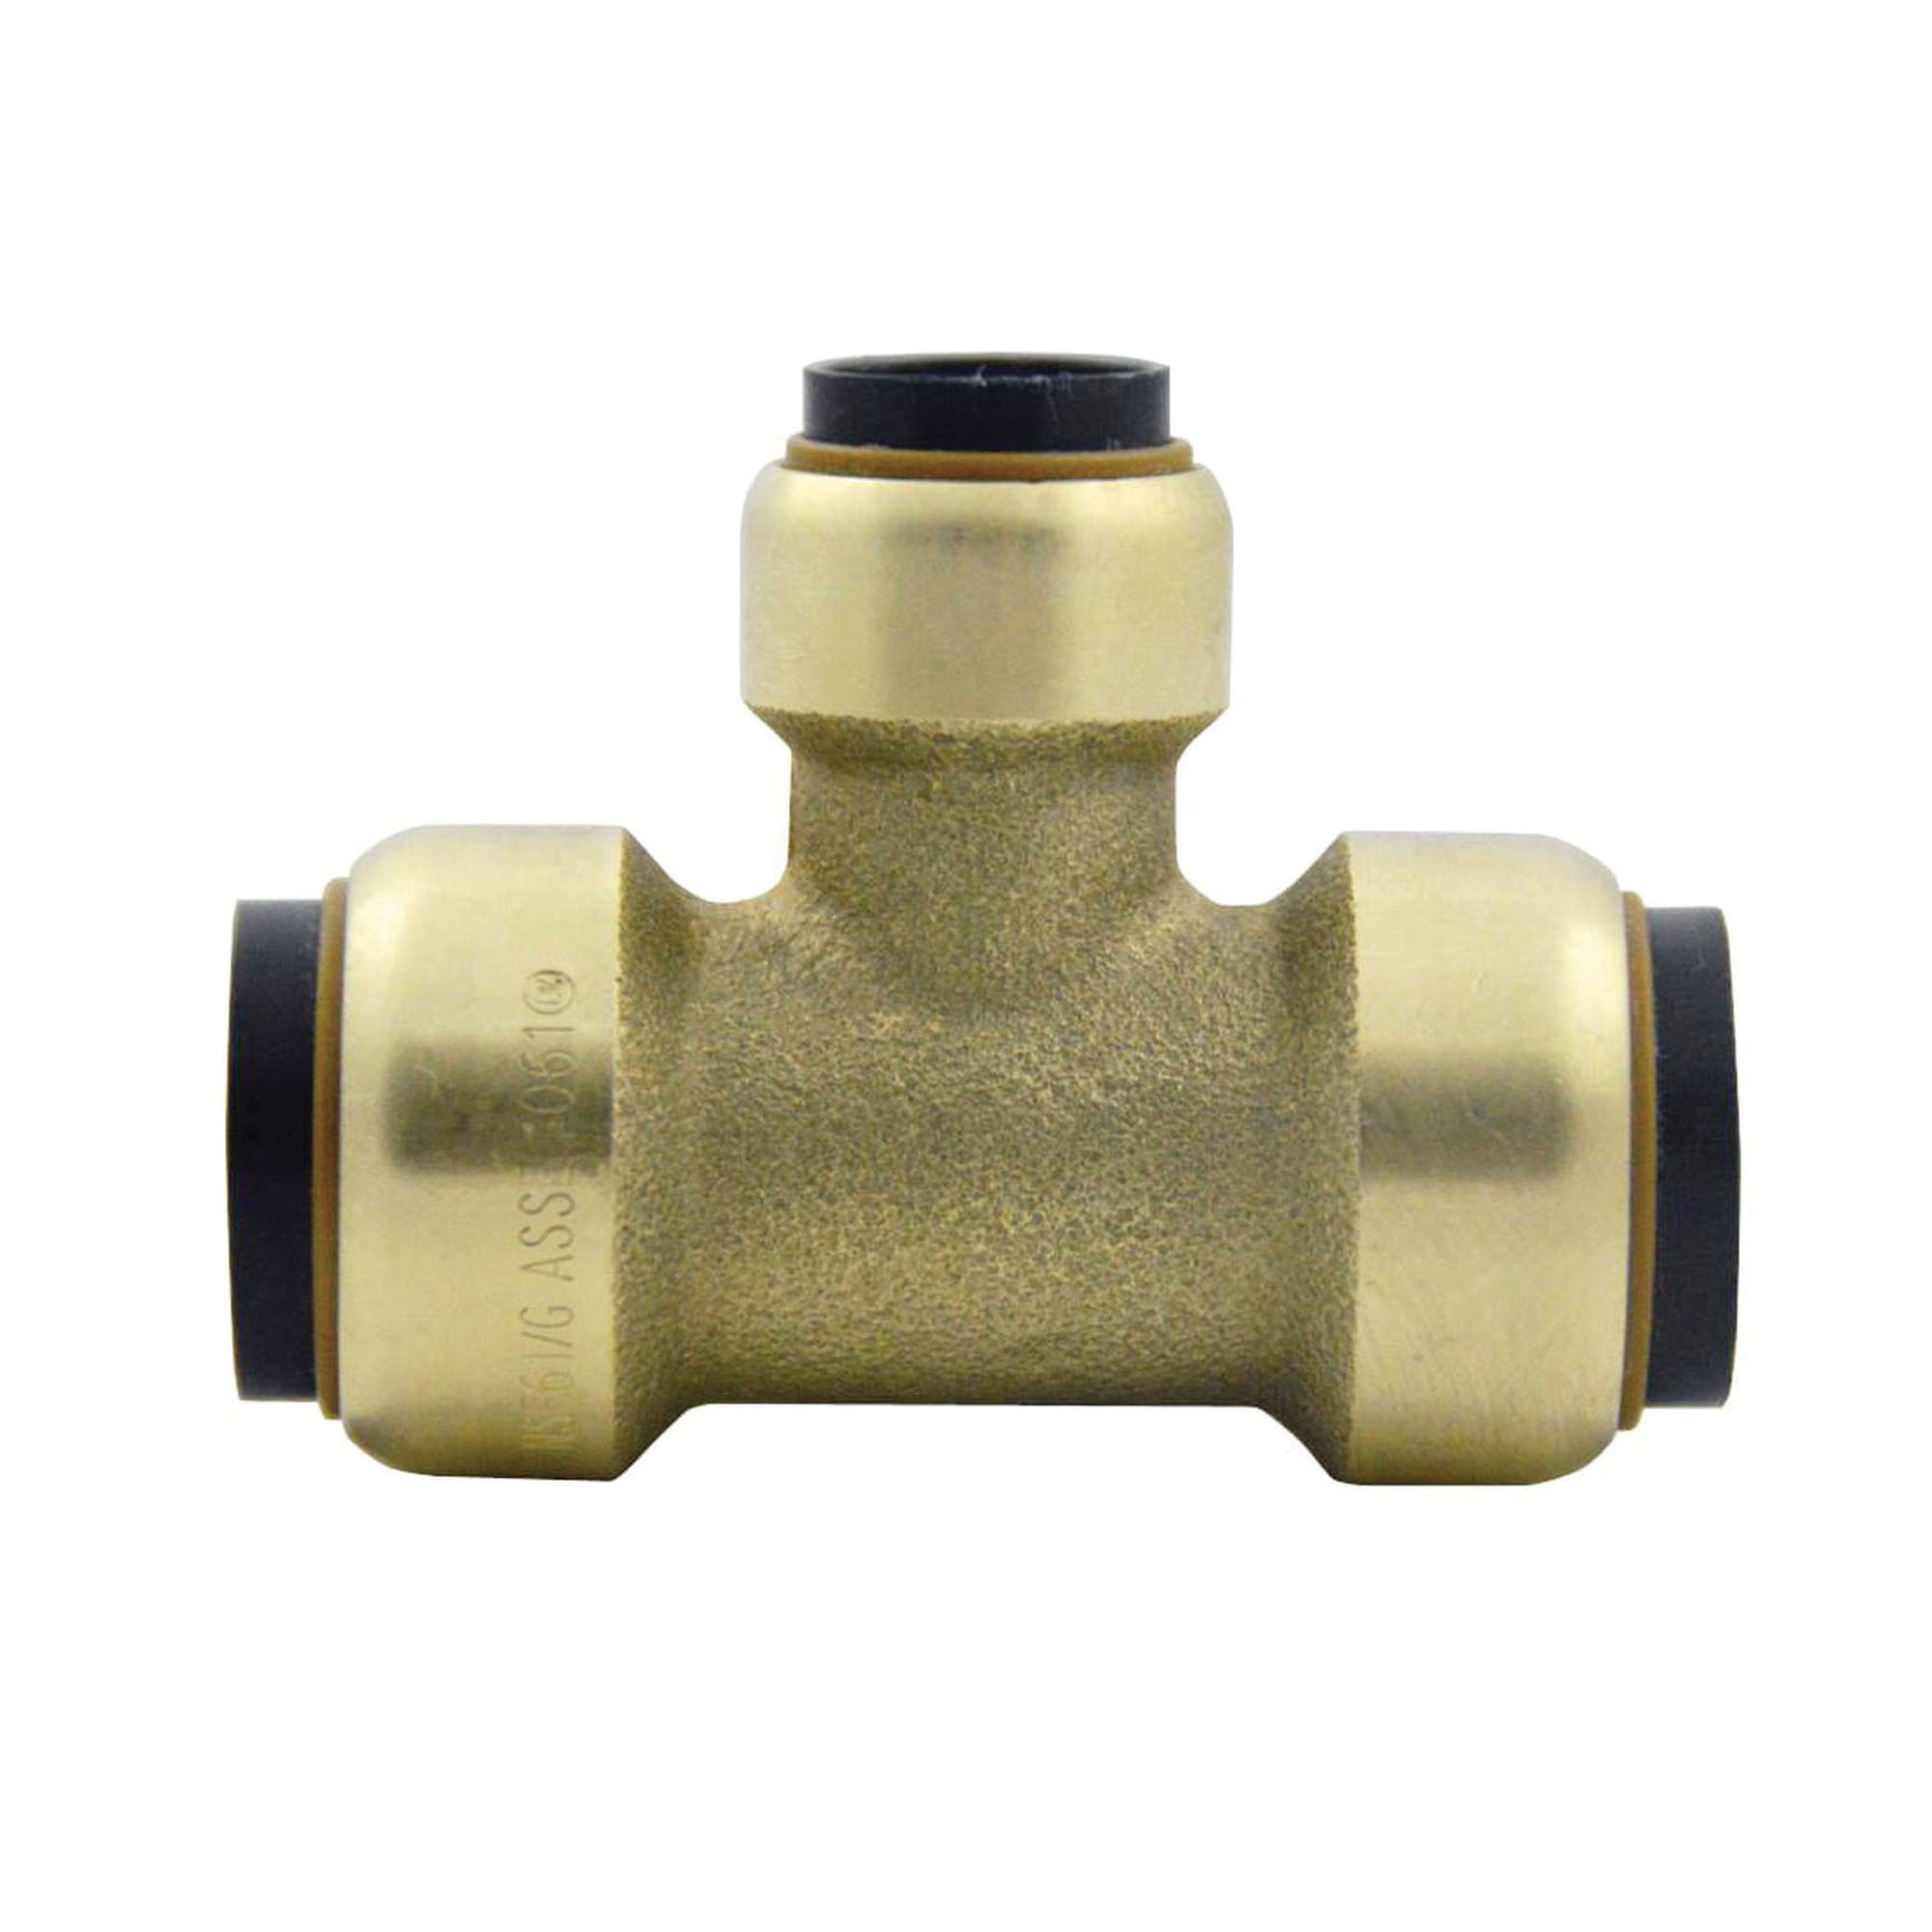 EPC TECTITE™ 10155494 Brass Reducing Push Tee, 3/4 in x 3/4 in x 1/2 in, Copper